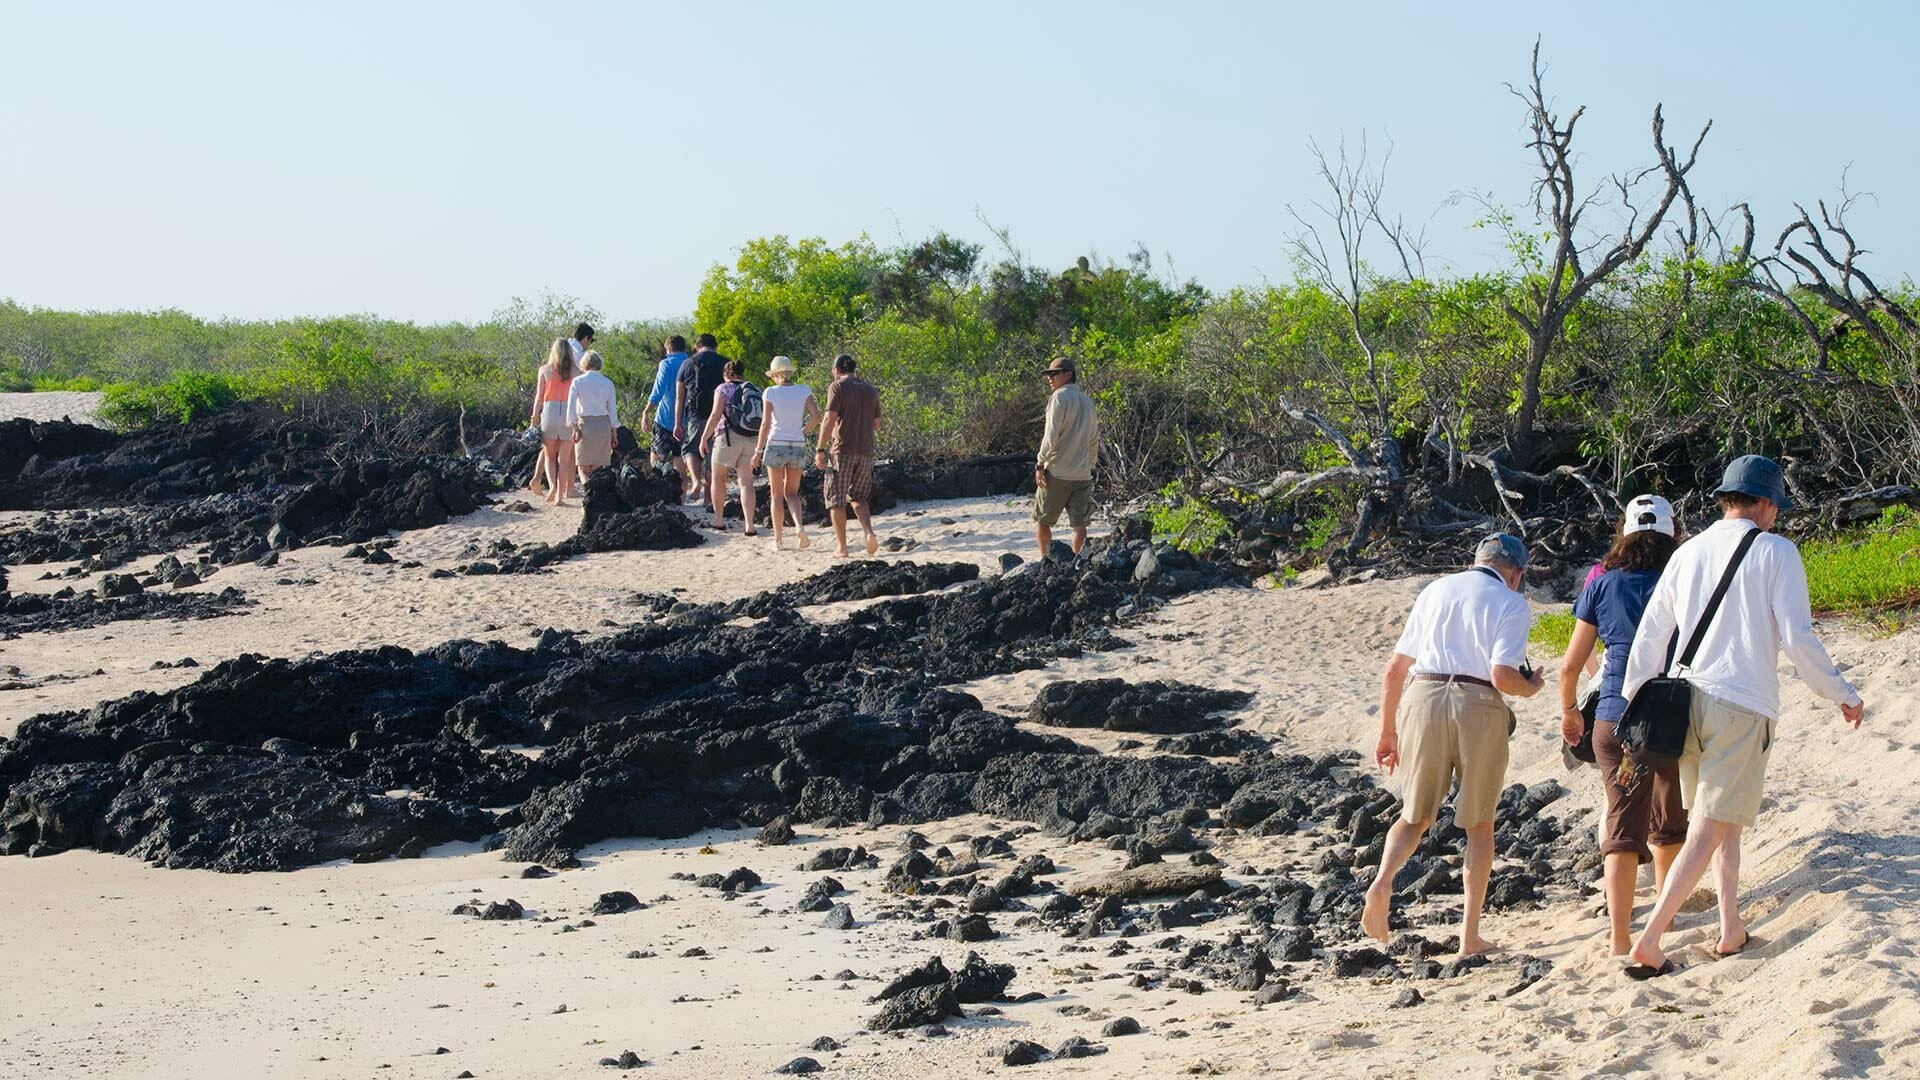 group of galapagos tourists walking on the beach